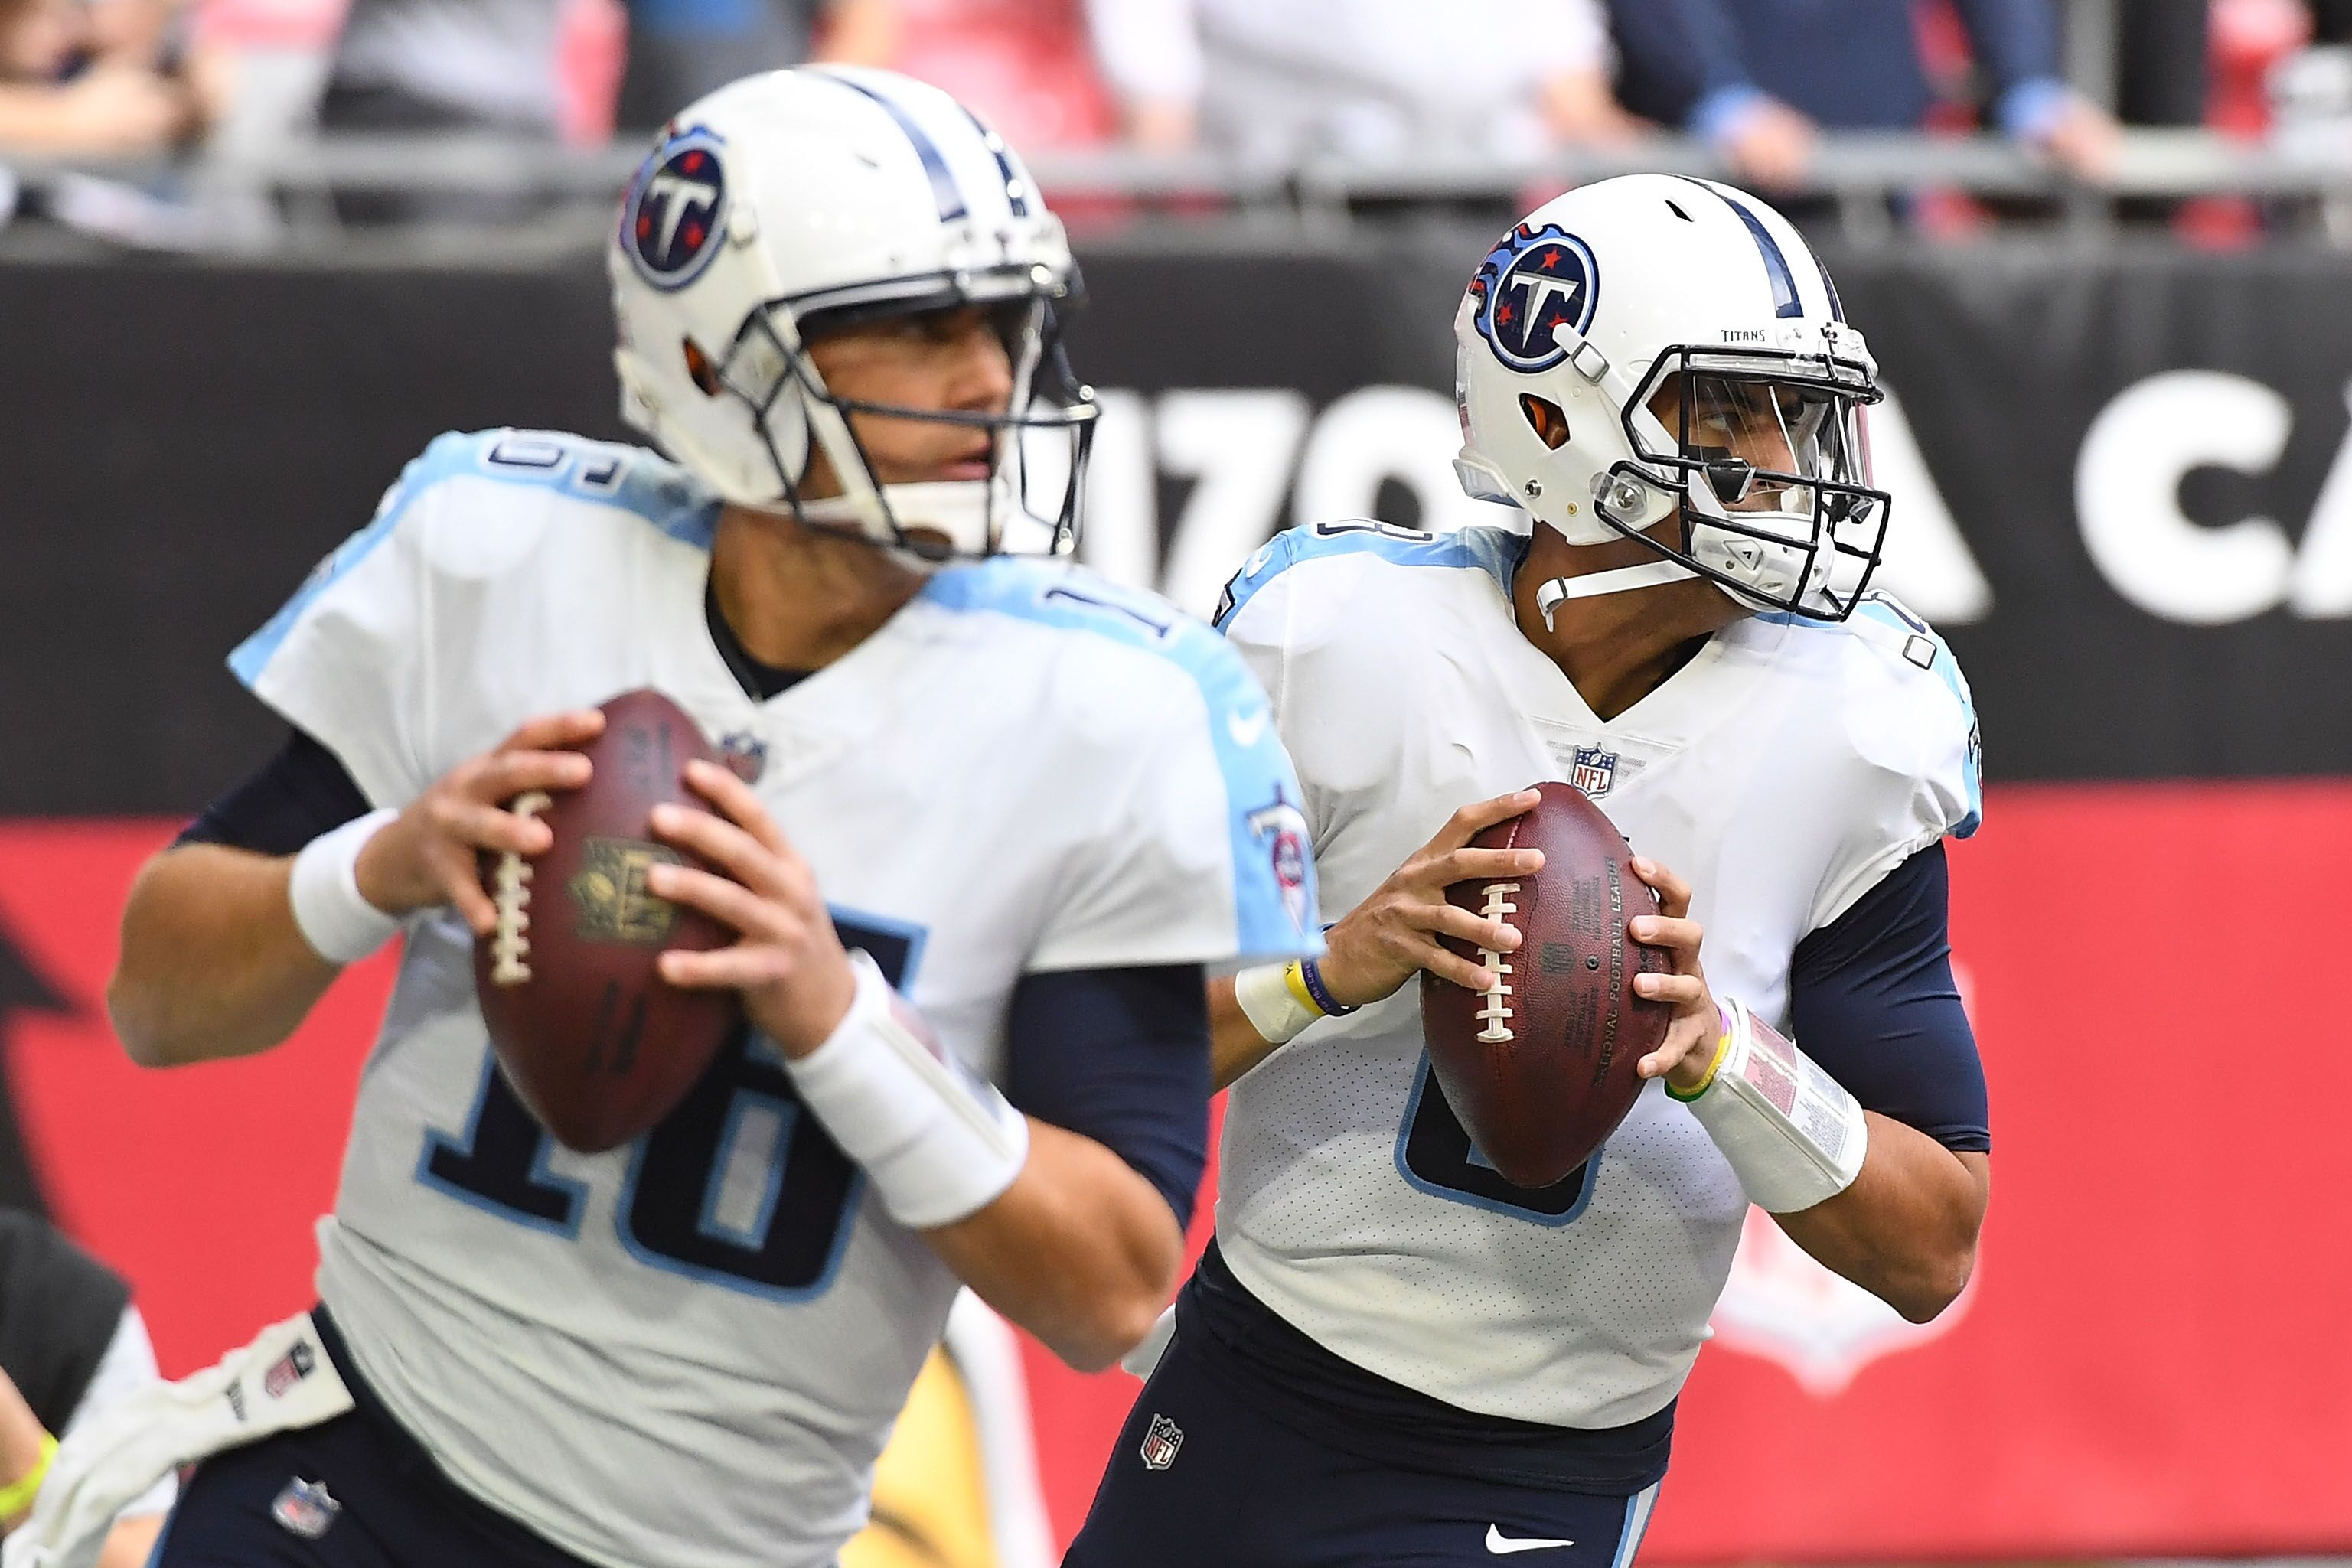 889659836-tennessee-titans-v-arizona-cardinals.jpg